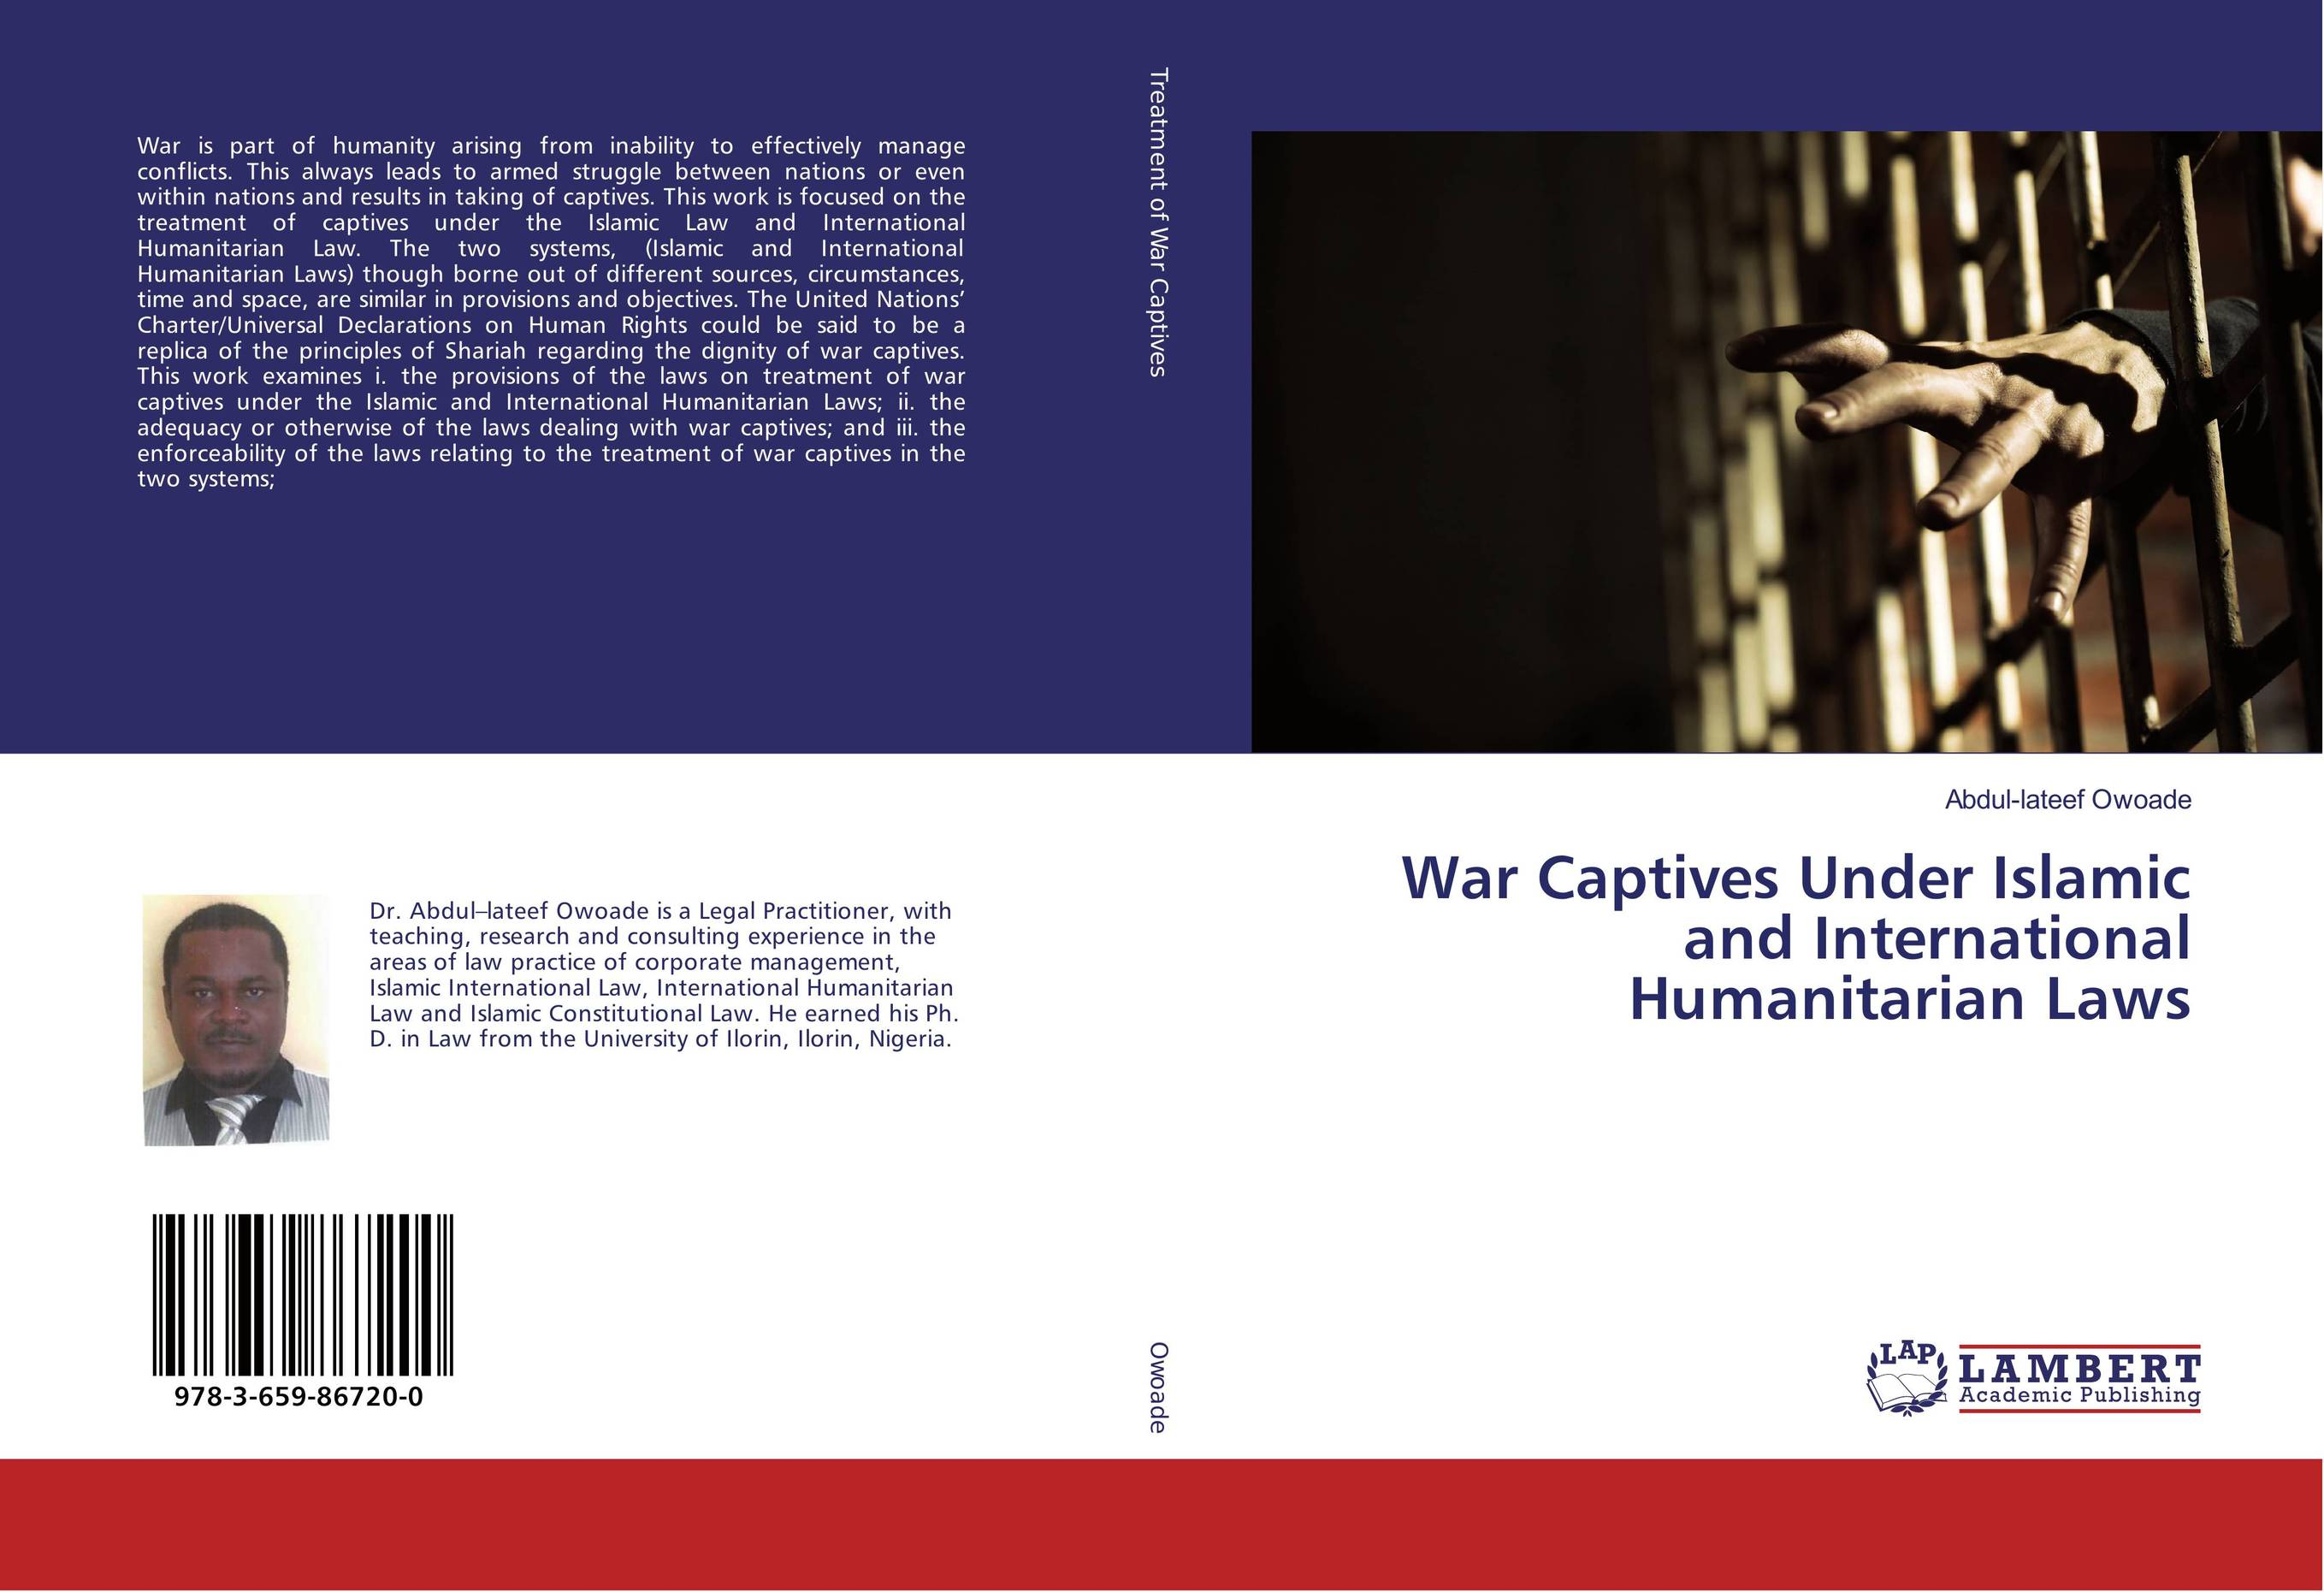 War Captives Under Islamic and International Humanitarian Laws tobias h keller telecommunications law under the light of convergence